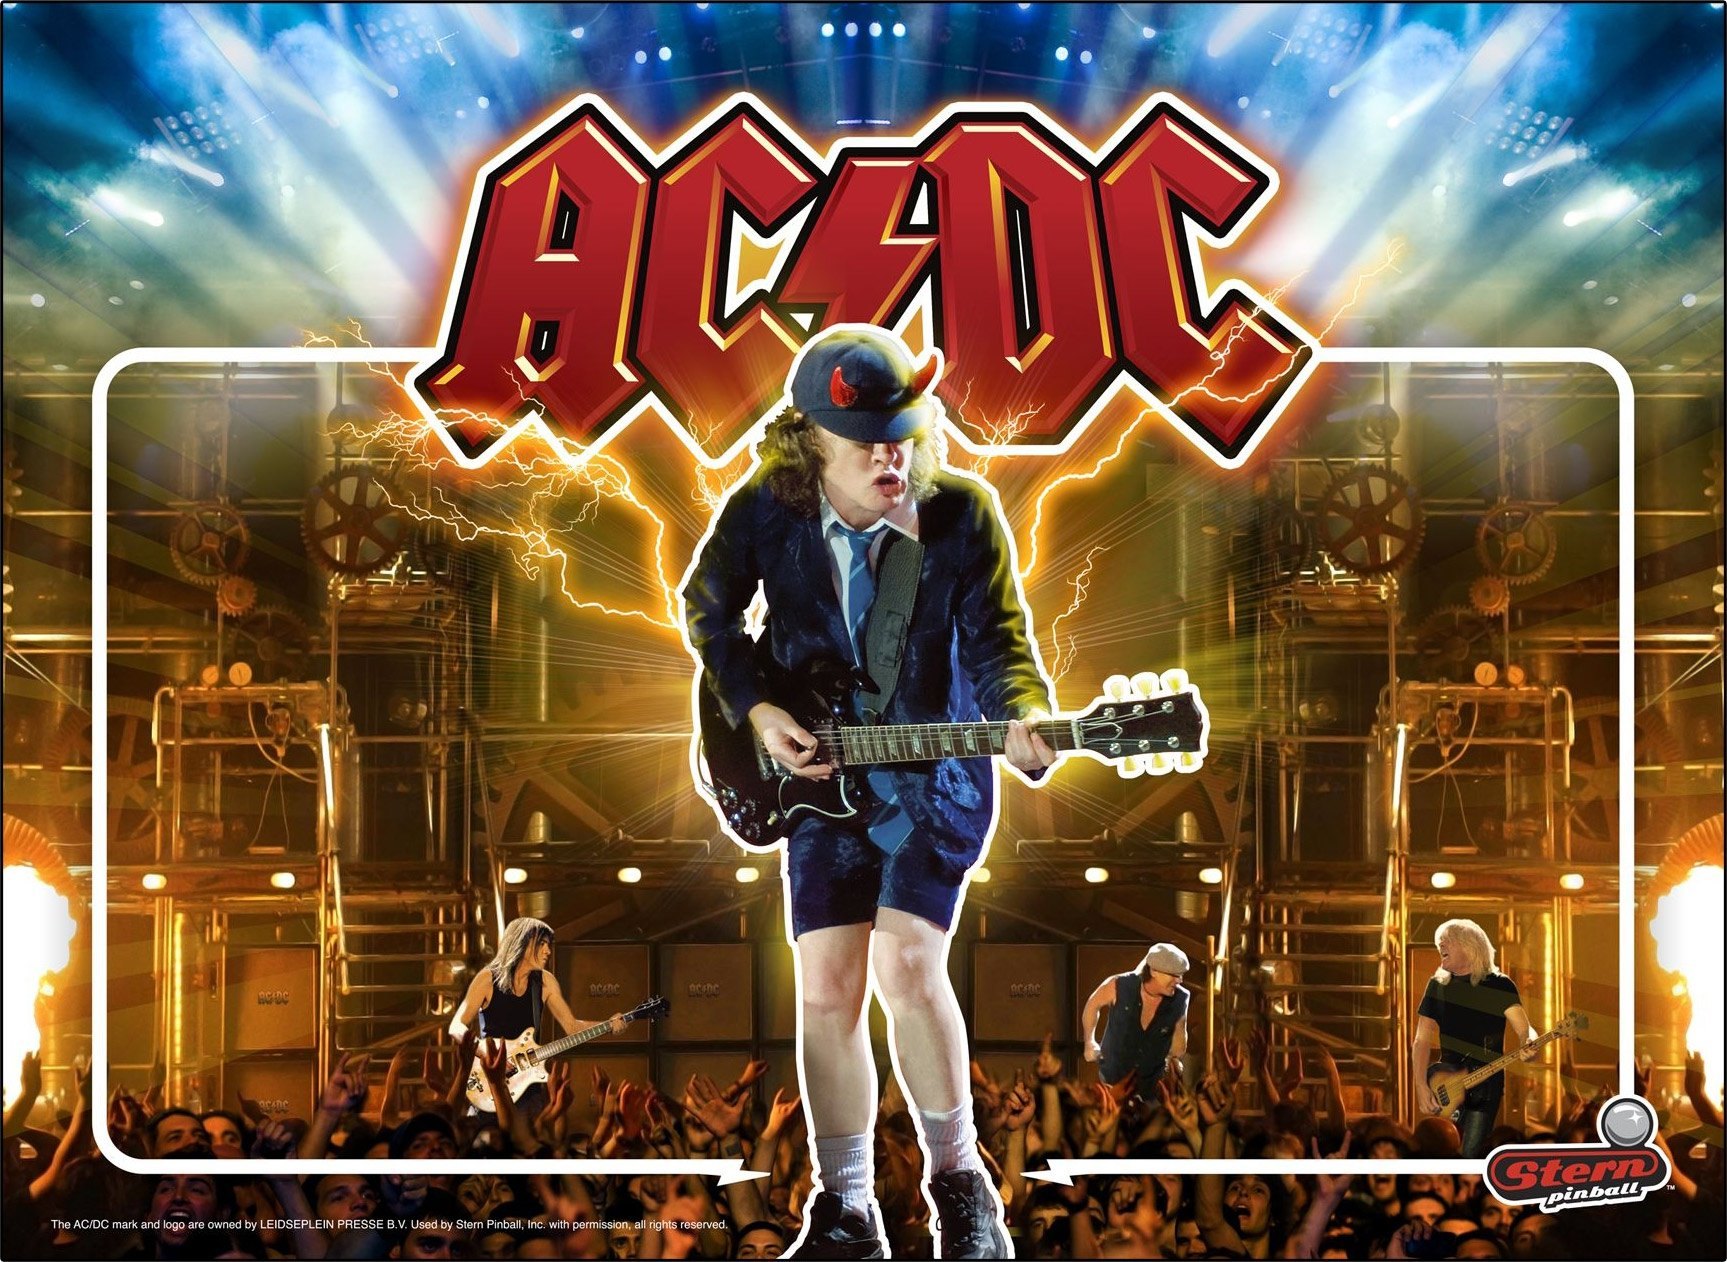 acdc heavy metal concert poster guitar wallpaper 1727x1262 329268 wallpaperup. Black Bedroom Furniture Sets. Home Design Ideas